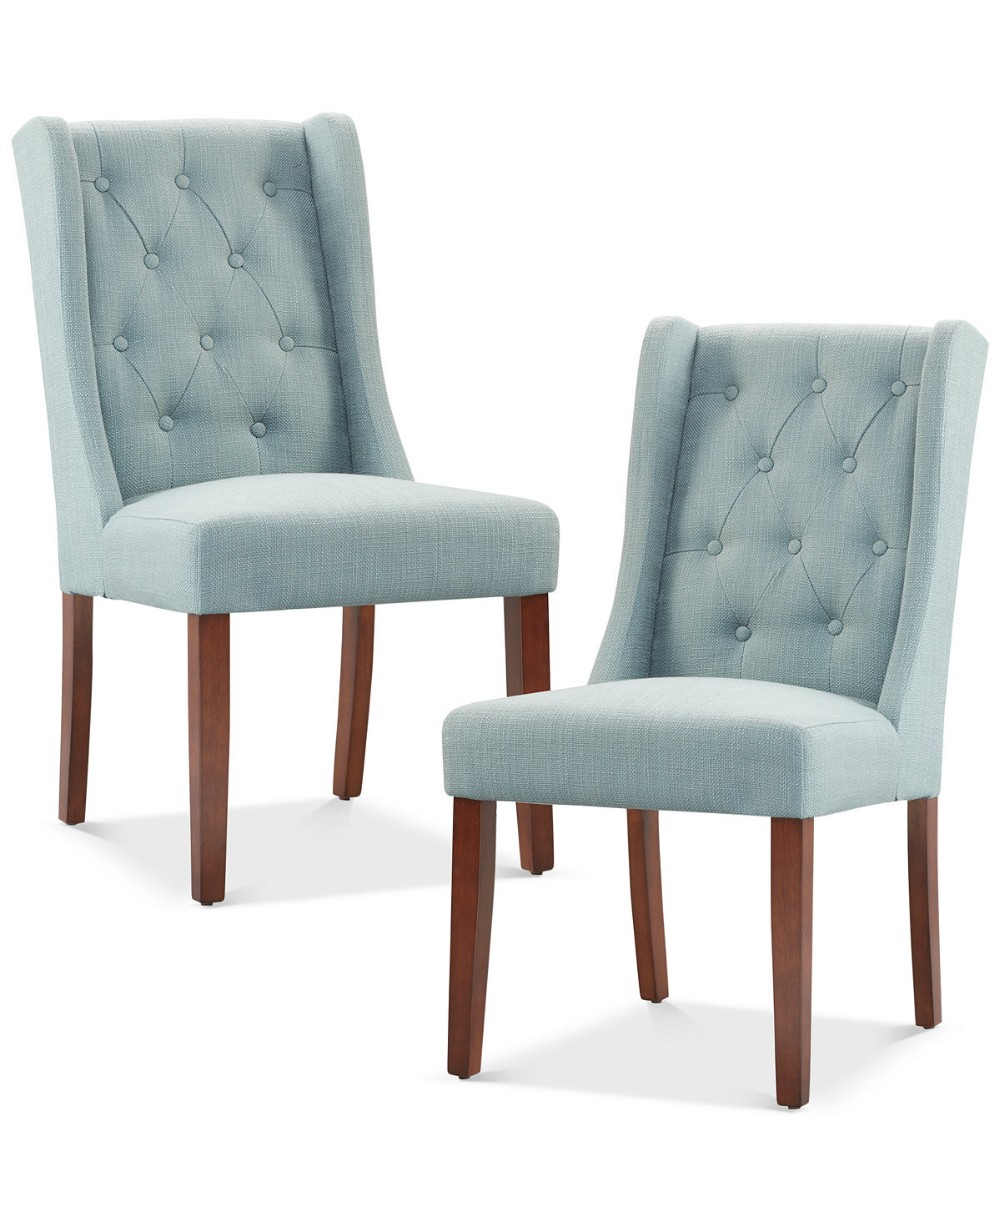 711 Traditionally Decor <strong>Style</strong> Stunning Button Tufted Chair Dining Set Home <strong>Furniture</strong>